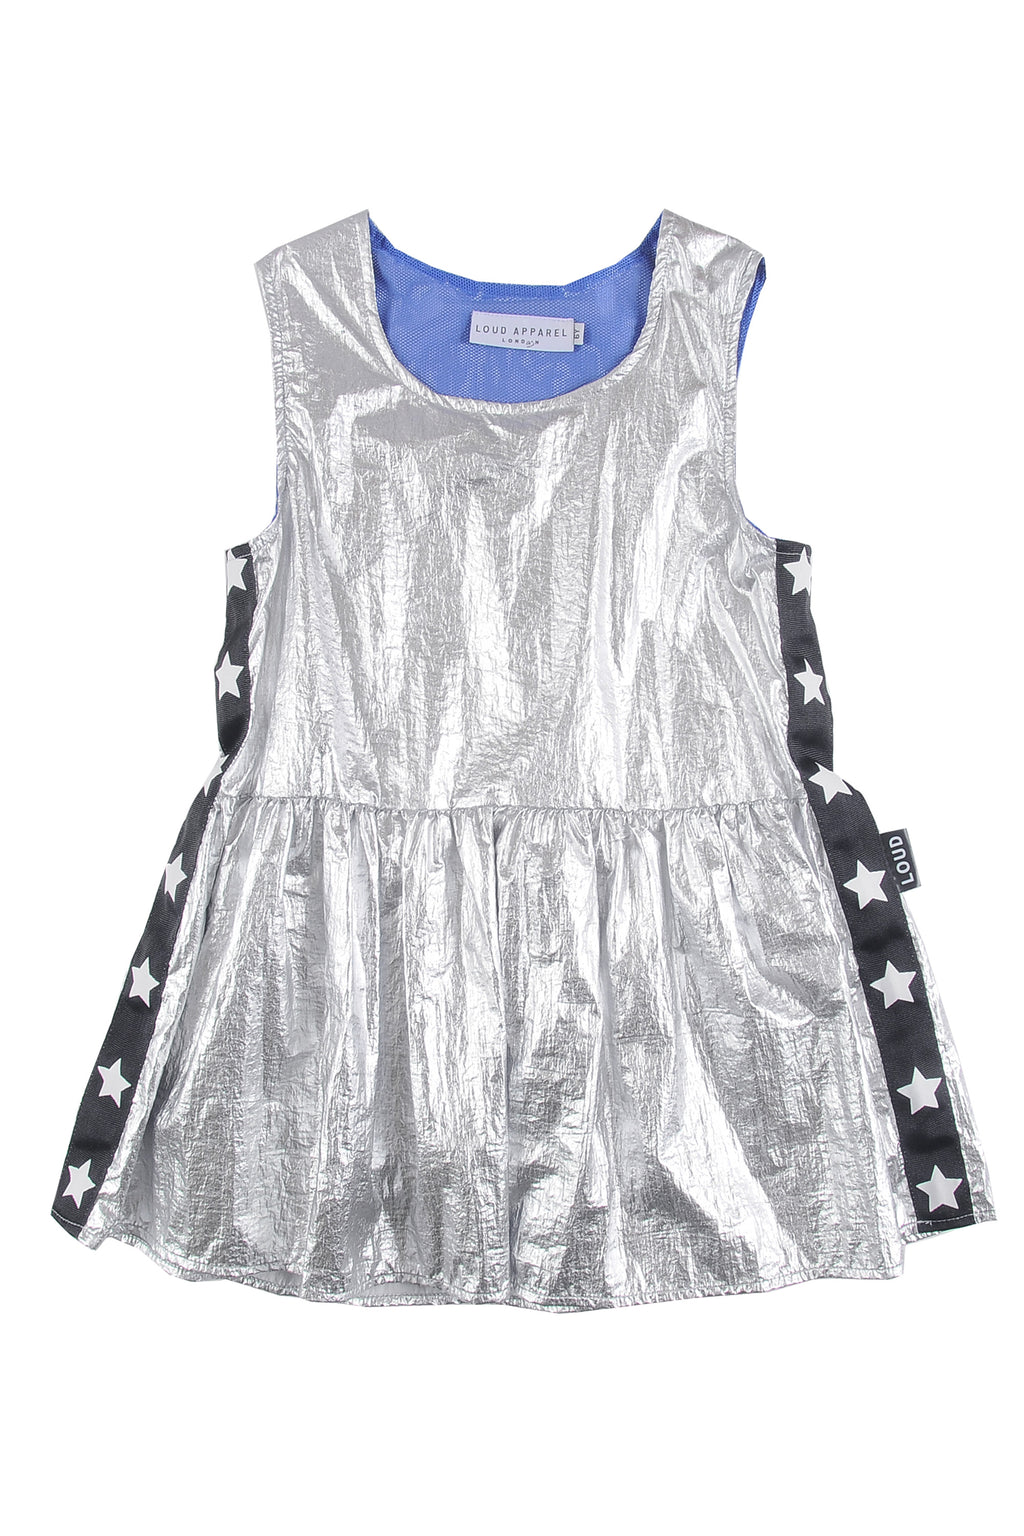 Loud Apparel Dance Metallic Dress